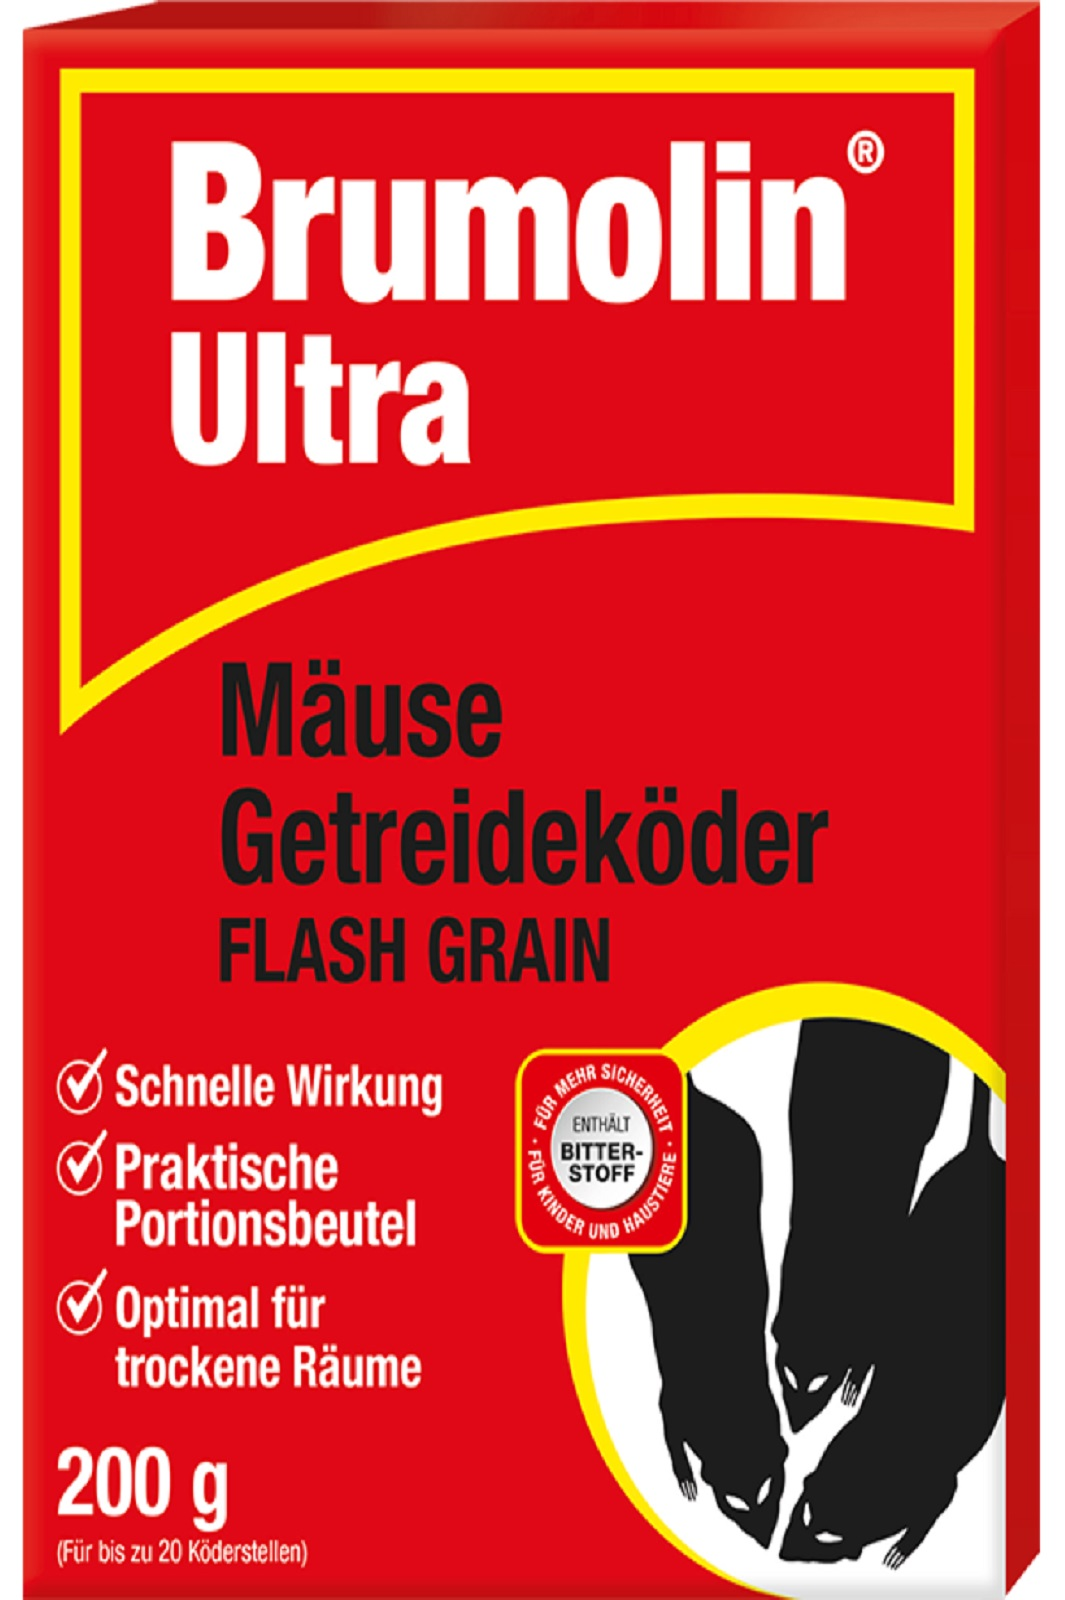 Brumolin Ultra Flash Grain Mäuse Getreideköder 200 g